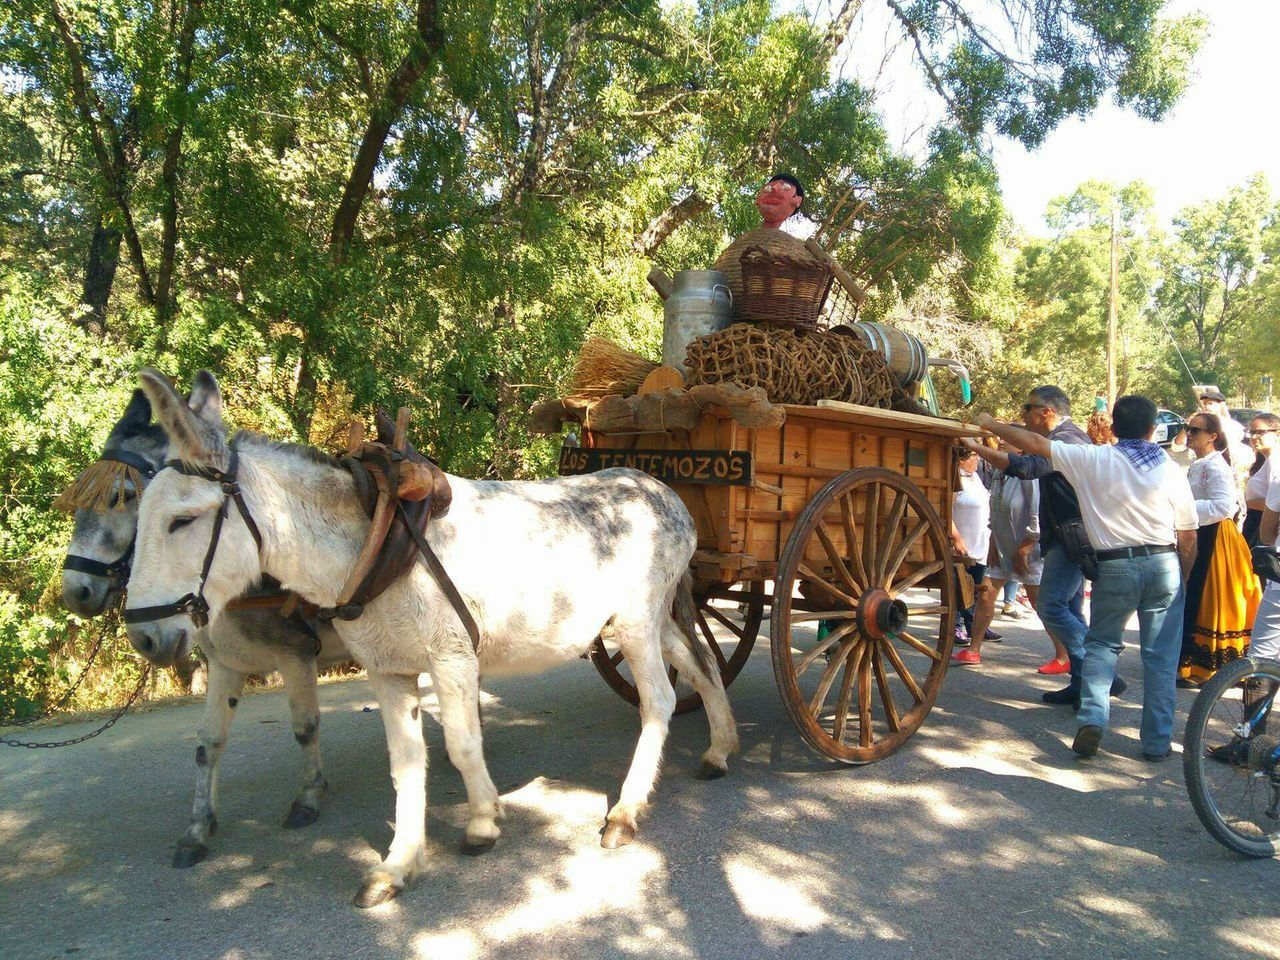 horse, working animal, animal themes, horse cart, horsedrawn, domestic animals, mammal, carriage, transportation, tree, livestock, riding, outdoors, day, real people, full length, nature, one person, people